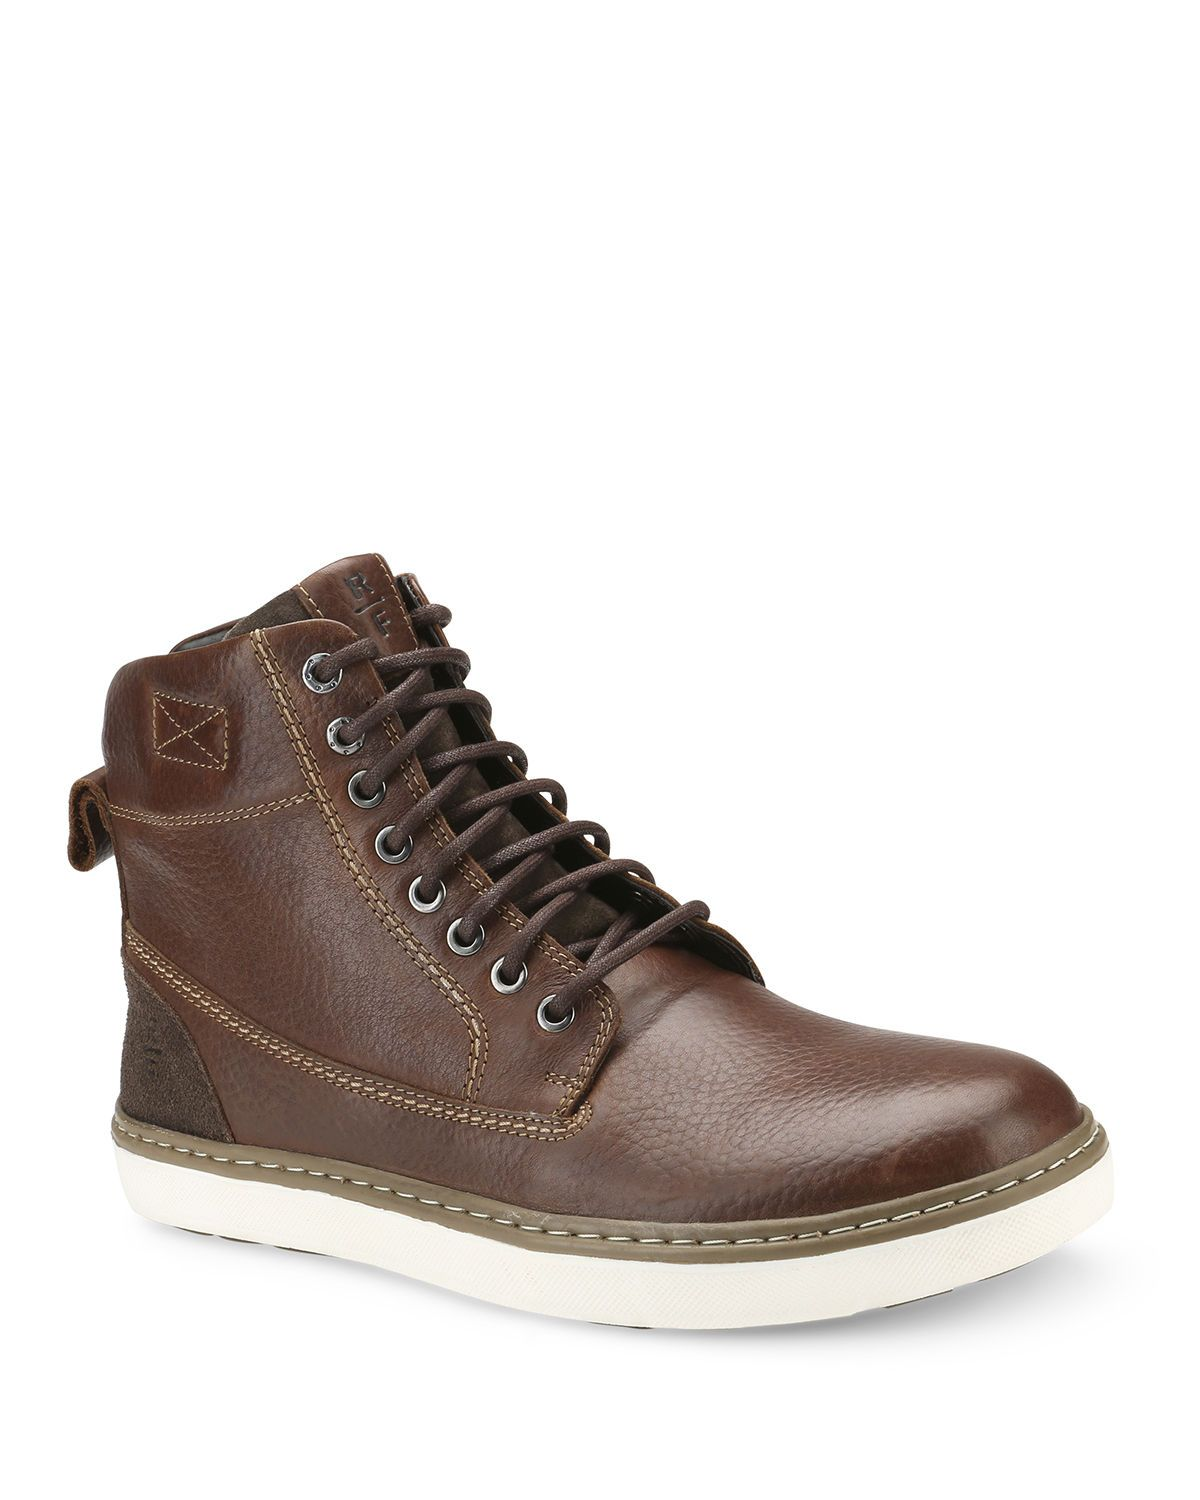 7bb4324b948 RESERVED FOOTWEAR MEN'S CROMWELL LACE-UP LEATHER BOOTS ...